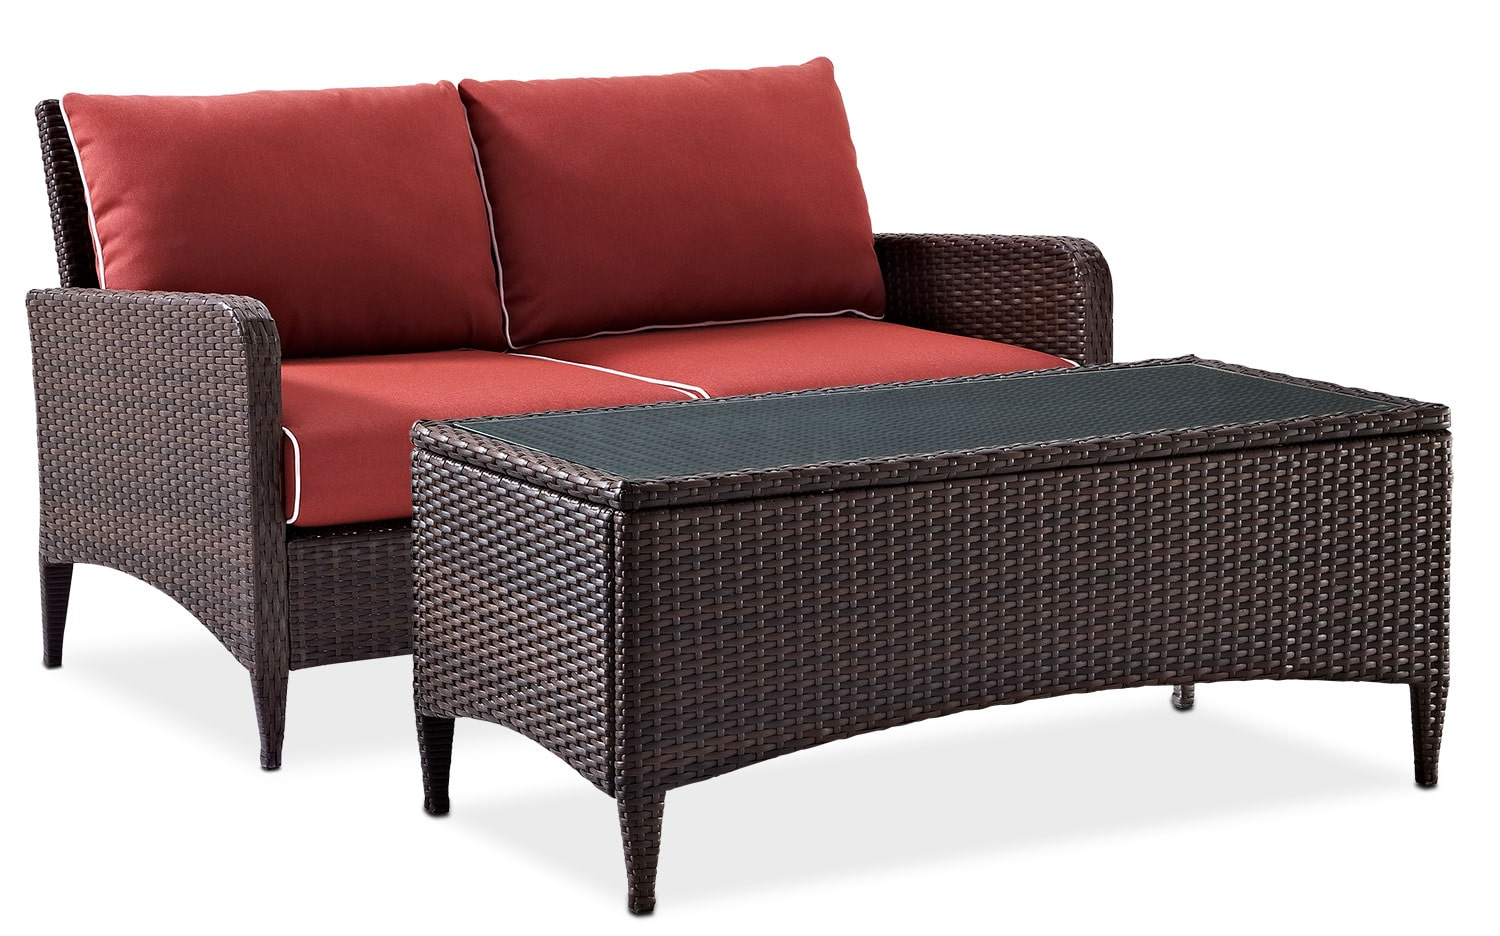 Outdoor Furniture - Corona Outdoor Loveseat and Coffee Table Set - Sangria